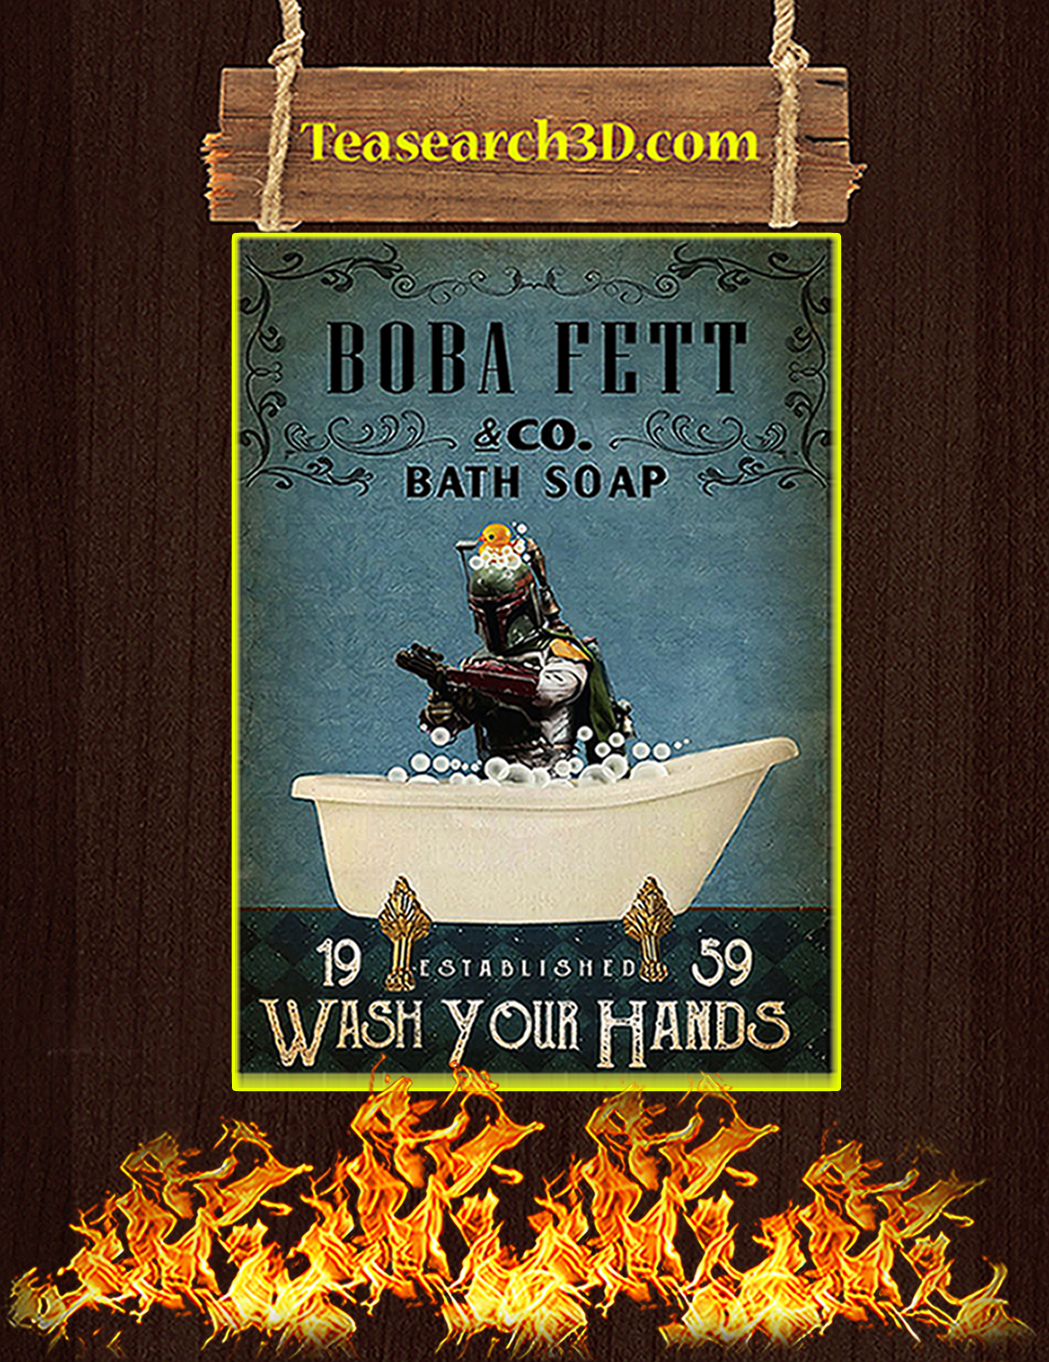 Boba bett co bath soap wash your hands poster A1